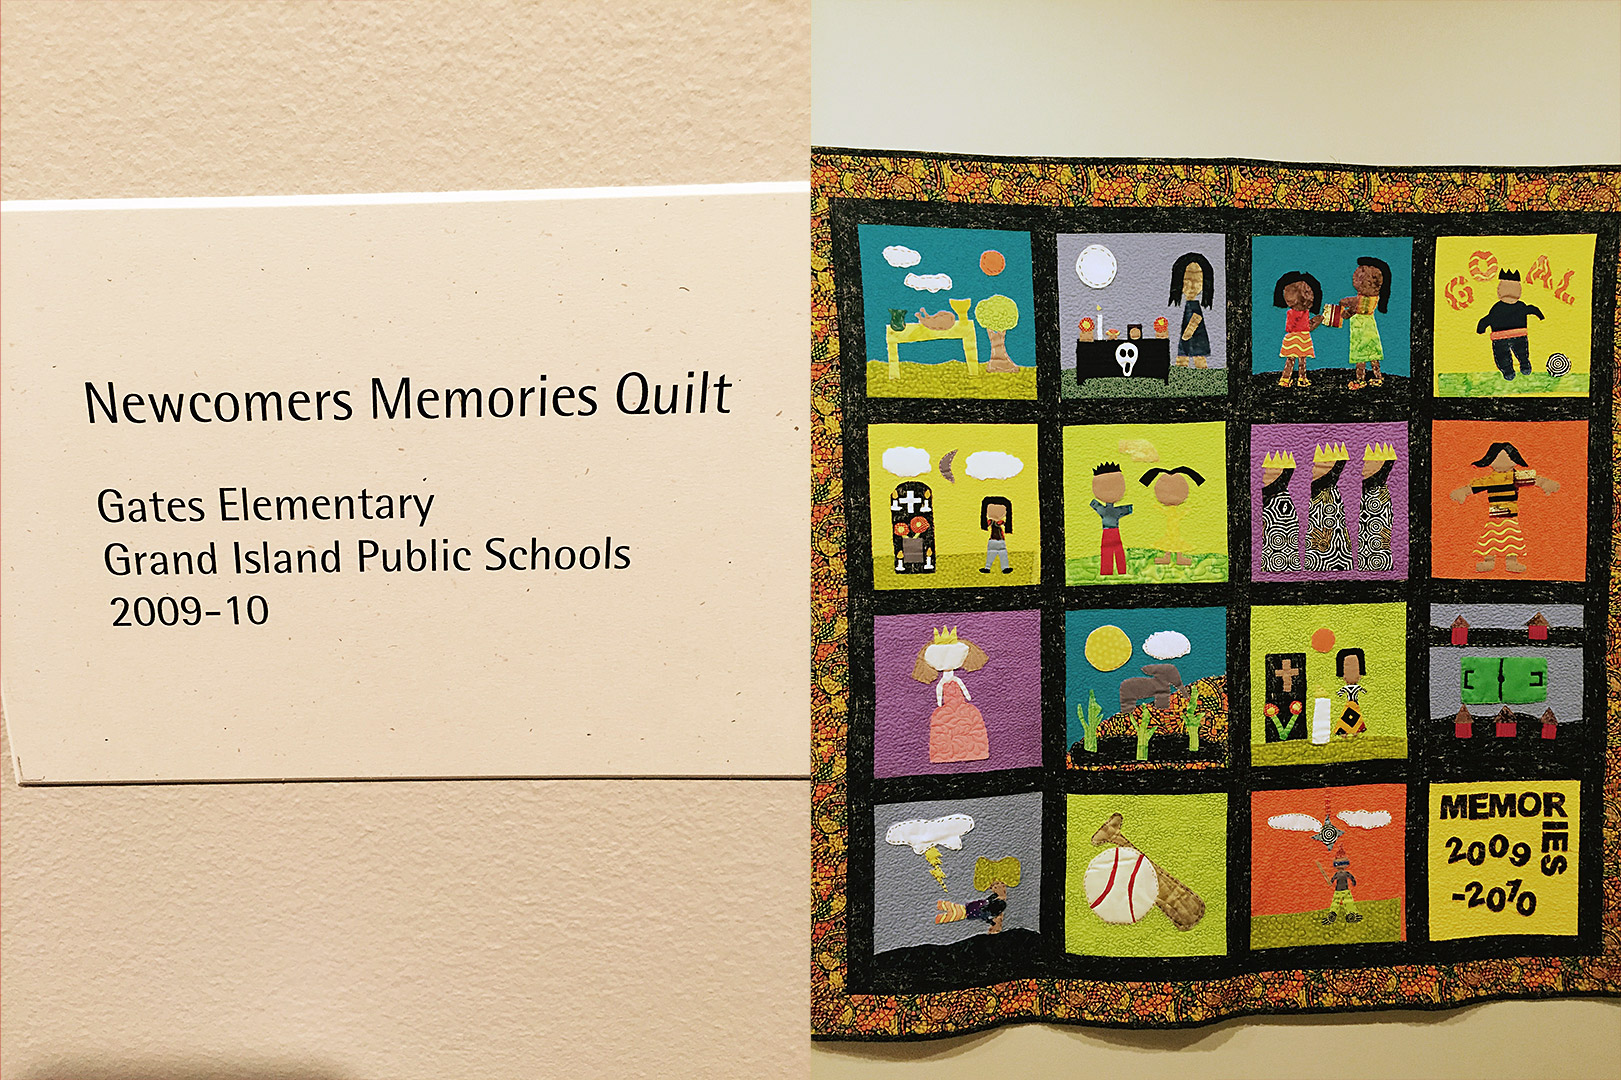 2009-2010 Newcomers Quilt. Courtesy Tracy Morrow